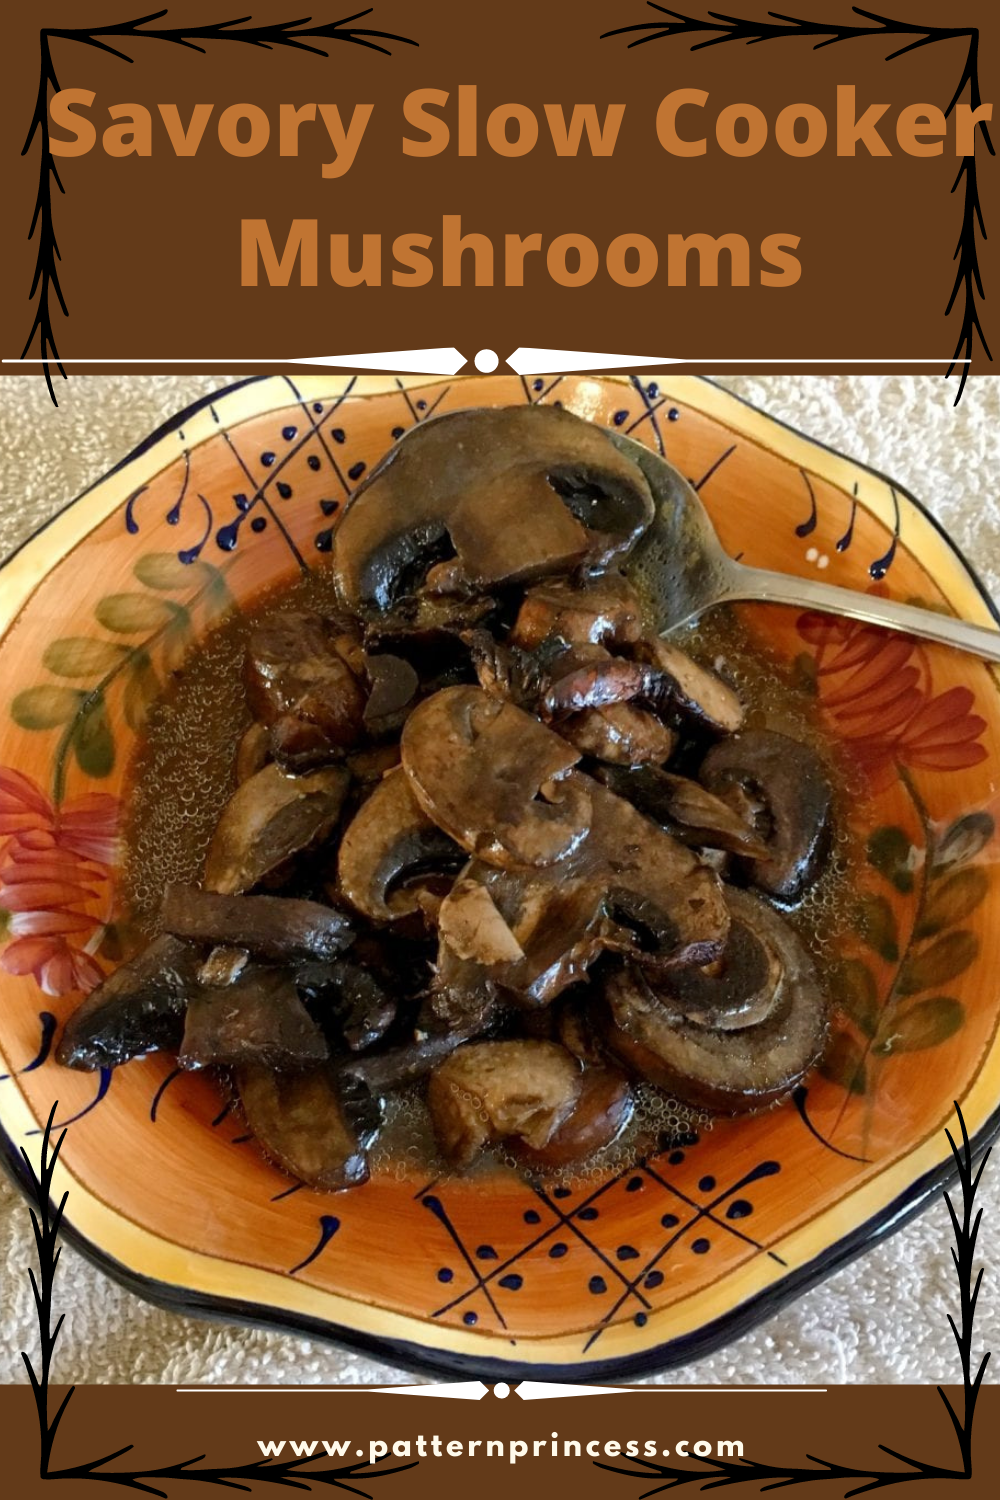 Savory Slow Cooker Mushrooms